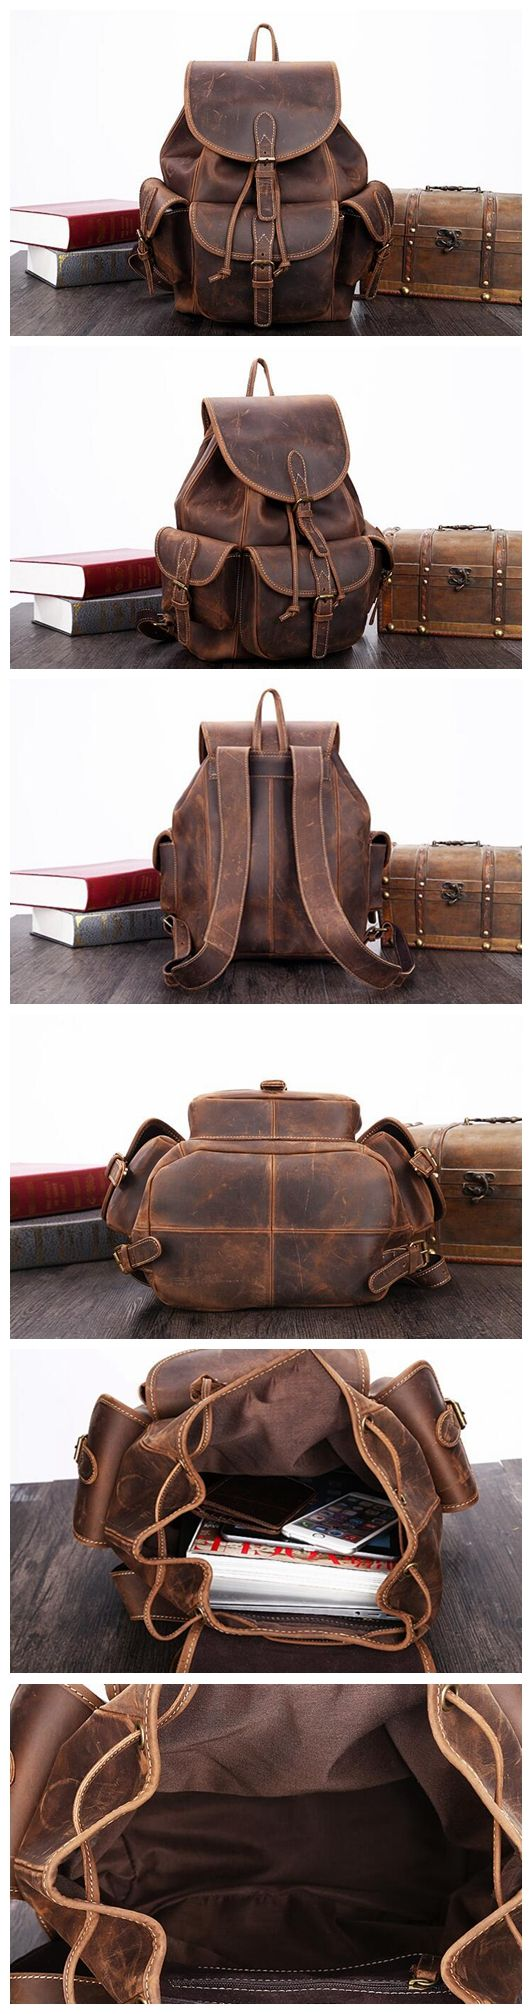 LEATHER CASUAL BACKPACK, LEATHER DESIGN, LEATHER HANDMADE BACKPACK